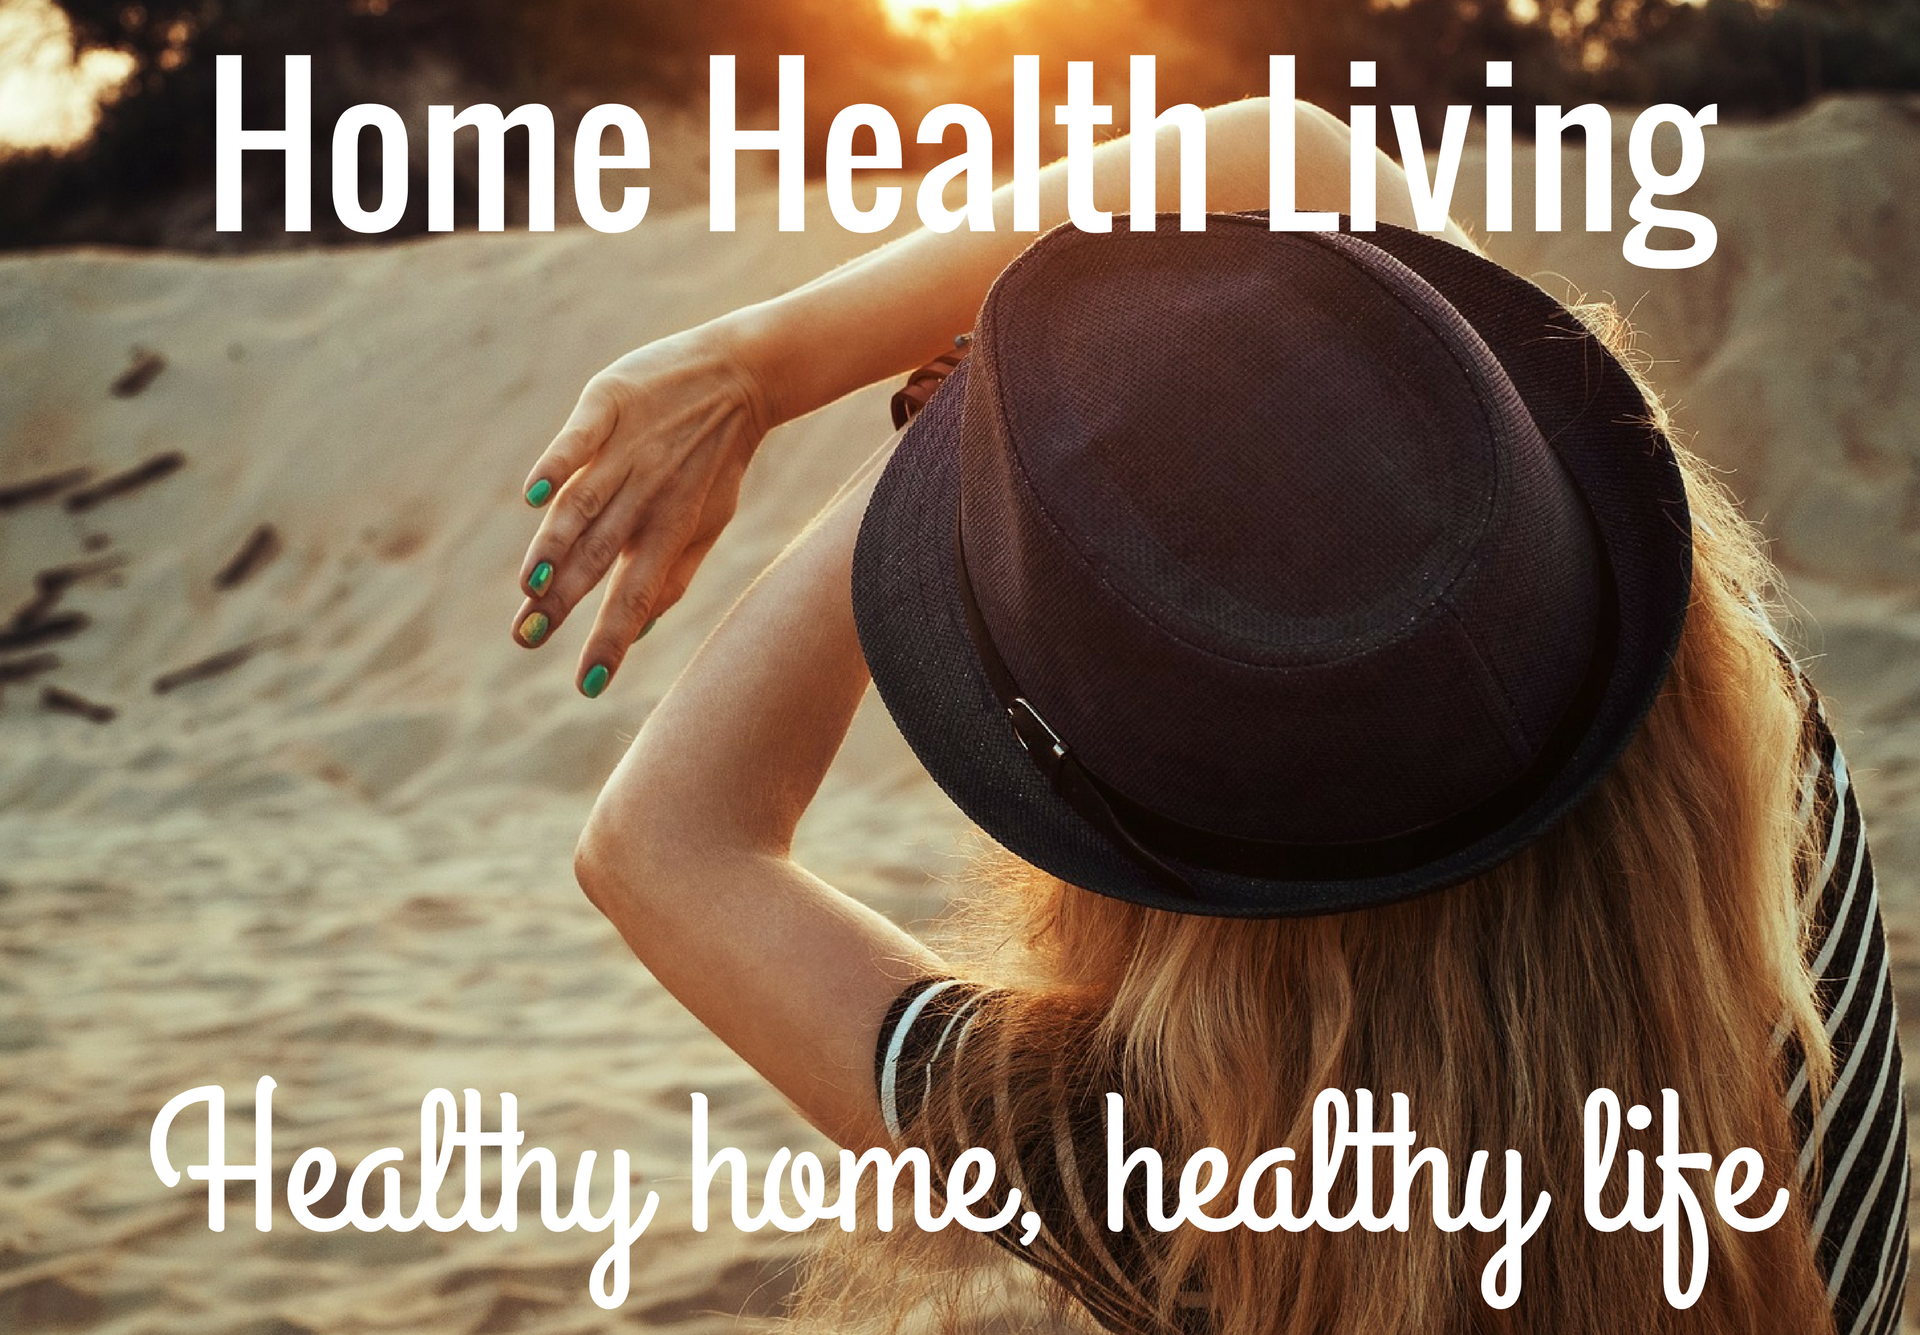 Home Health Living